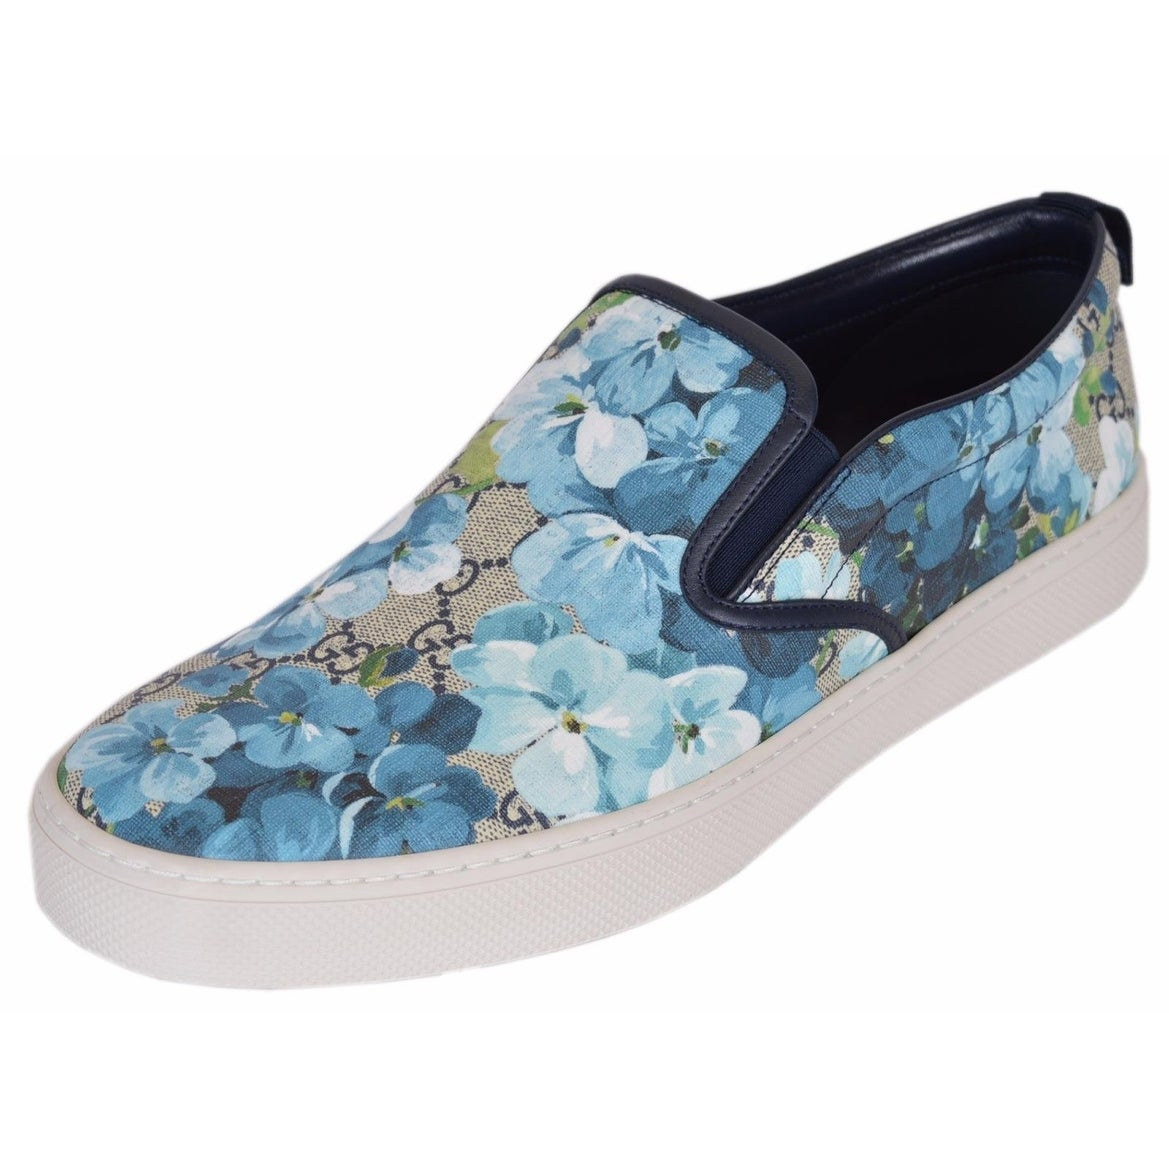 3d39cb4d50f82 Gucci Men s 407362 GG BLOOMS BLUE Coated Canvas Slip On Sneakers Shoes  12.5G 13.5US